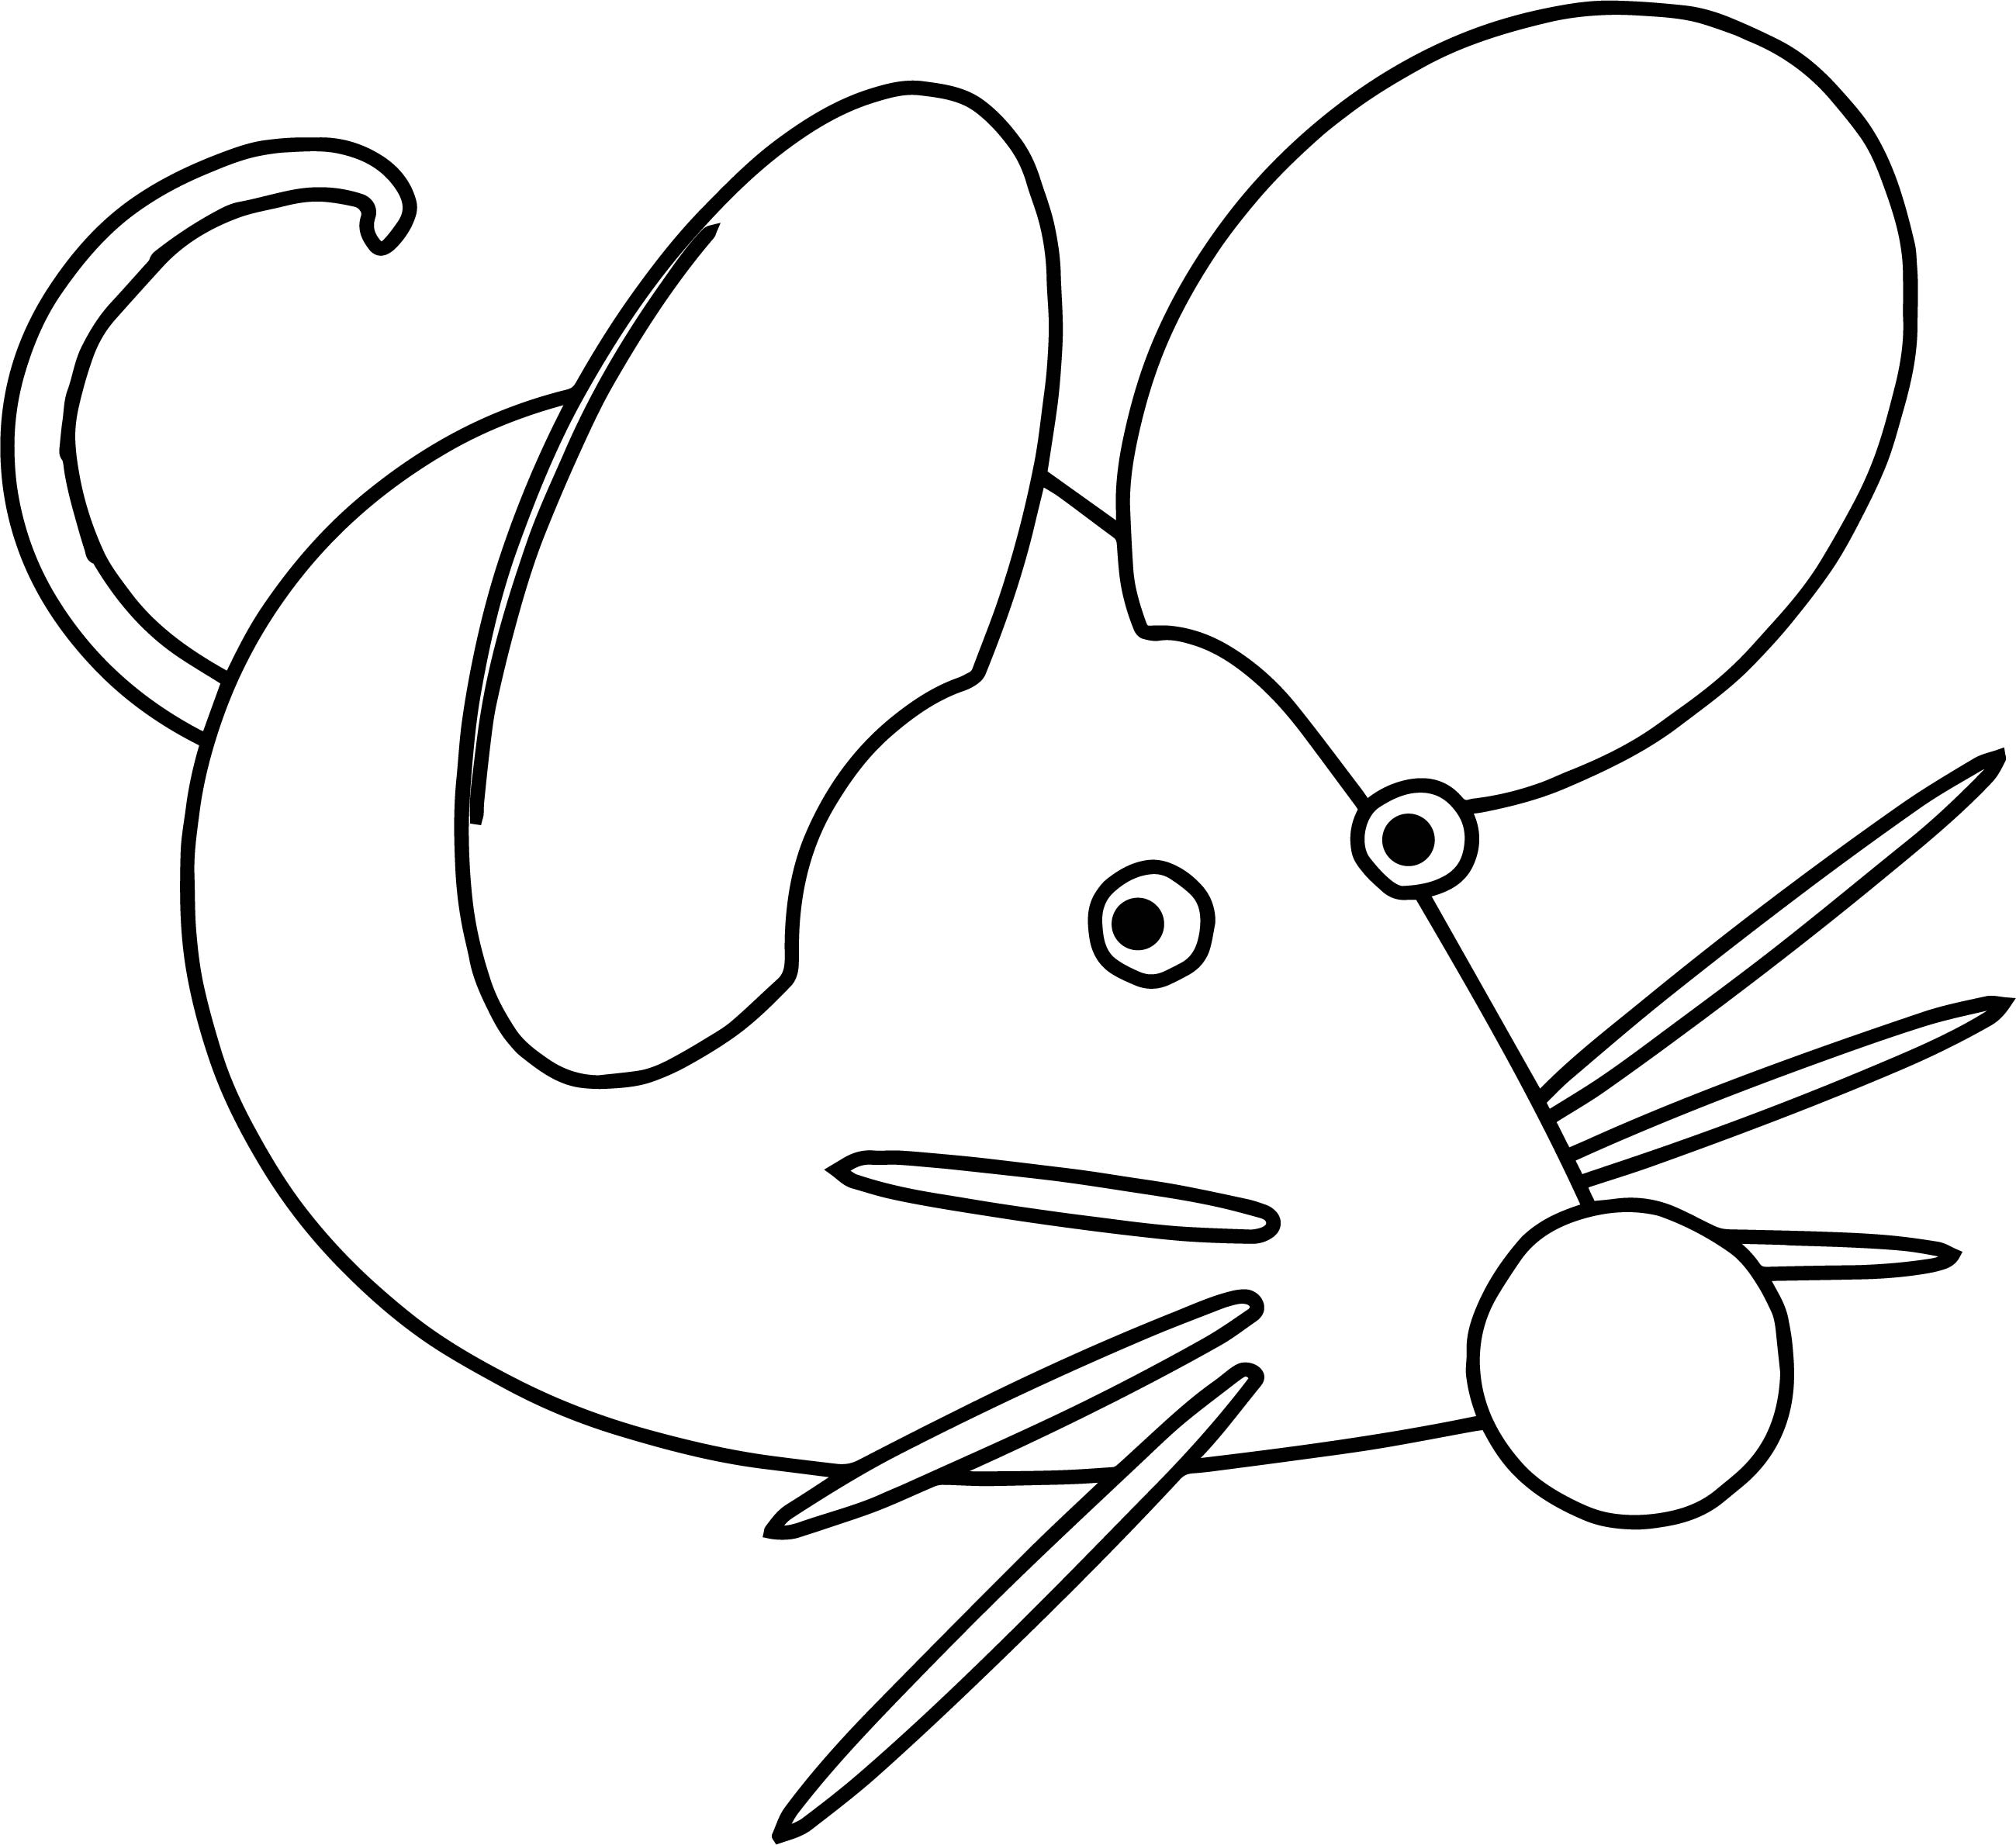 Basic Mouse Big Size Free Coloring Page